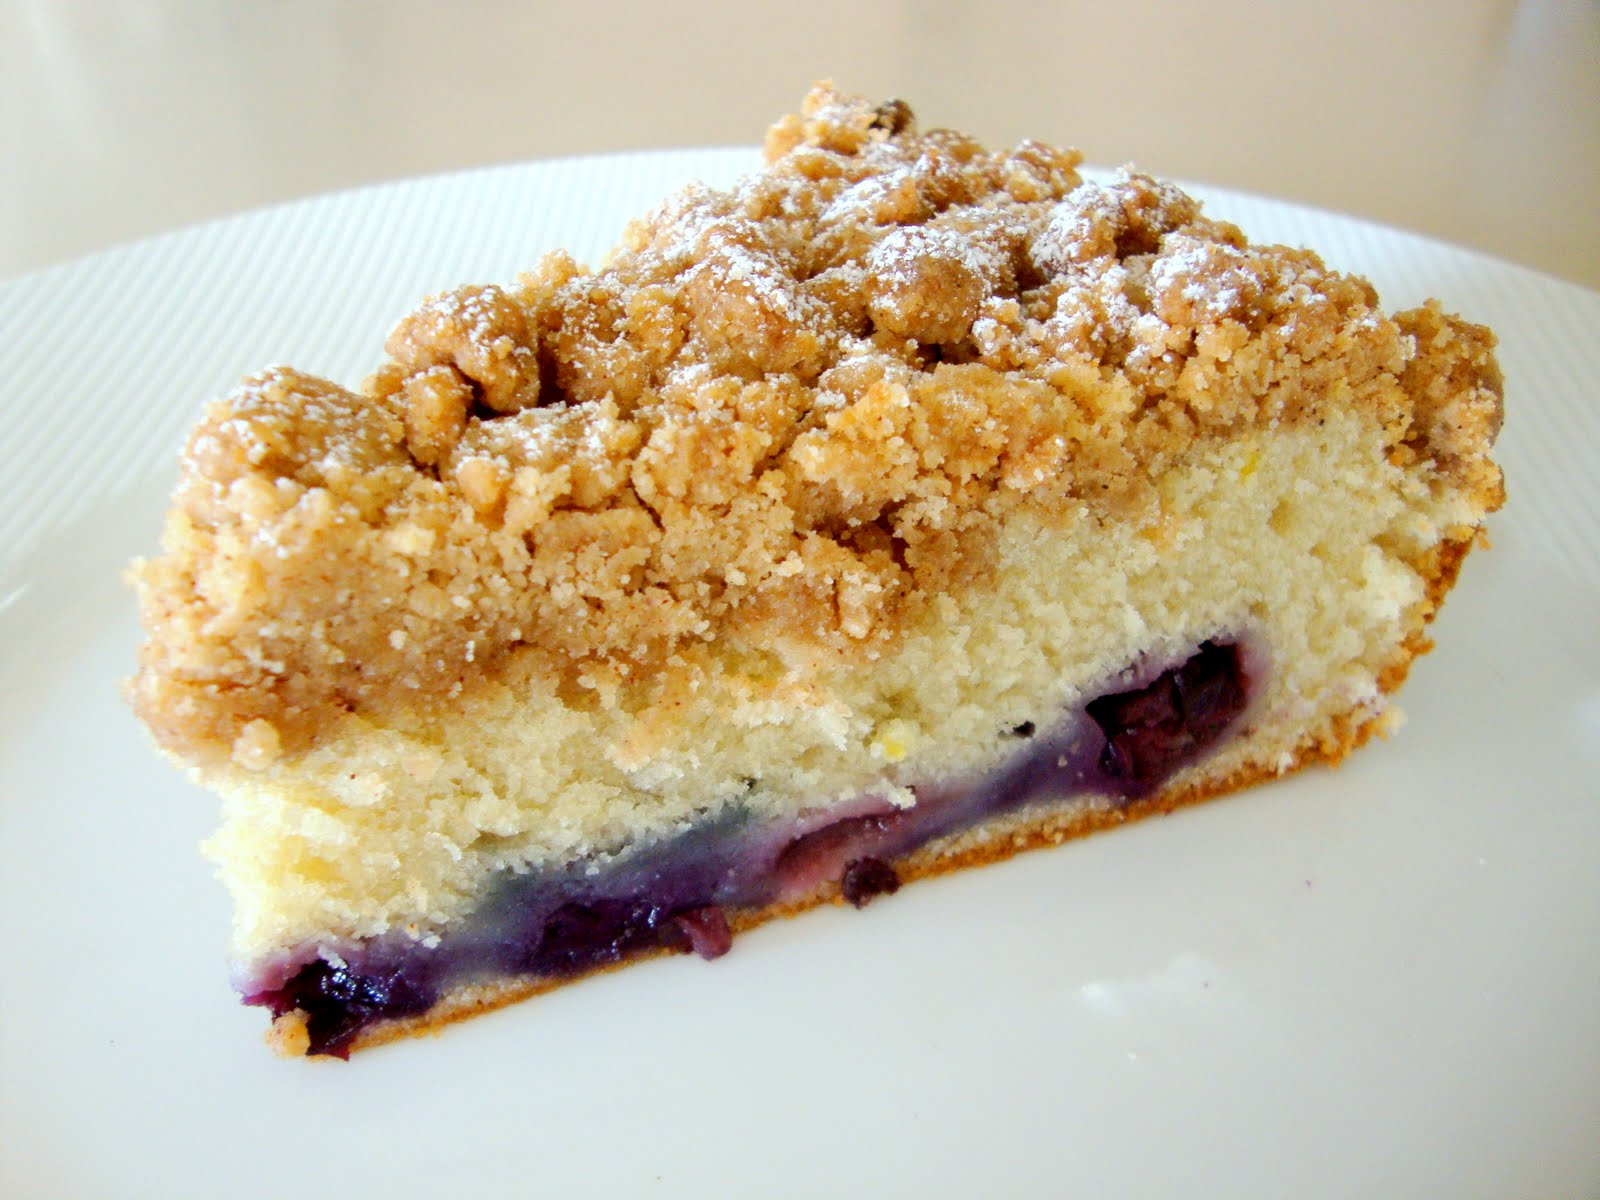 AJ's Cooking Secrets: Blueberry Crumb Cake